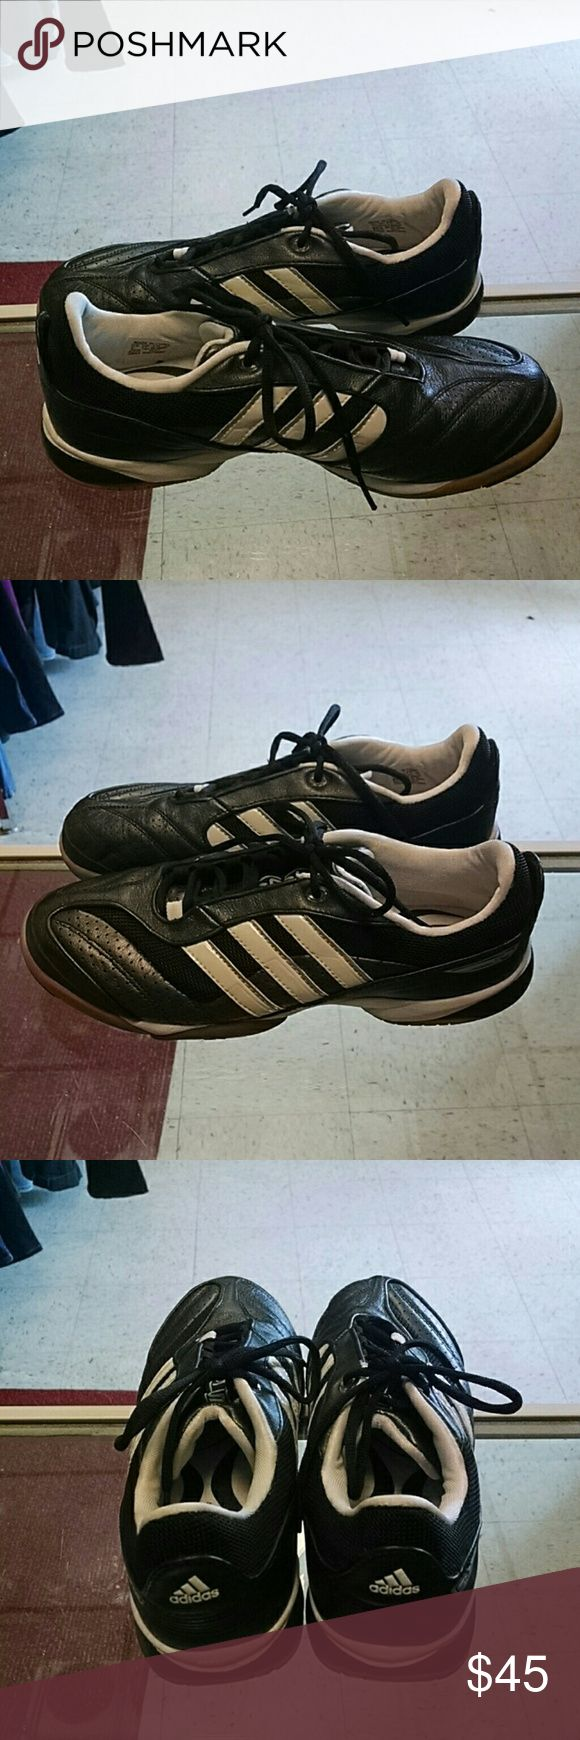 Adidas Samba Black Mens Size 7 Adidas Samba black and white men's size 7. Upper leather in almost new condition and soles are excellent with no noticable wear. adidas Shoes Sneakers